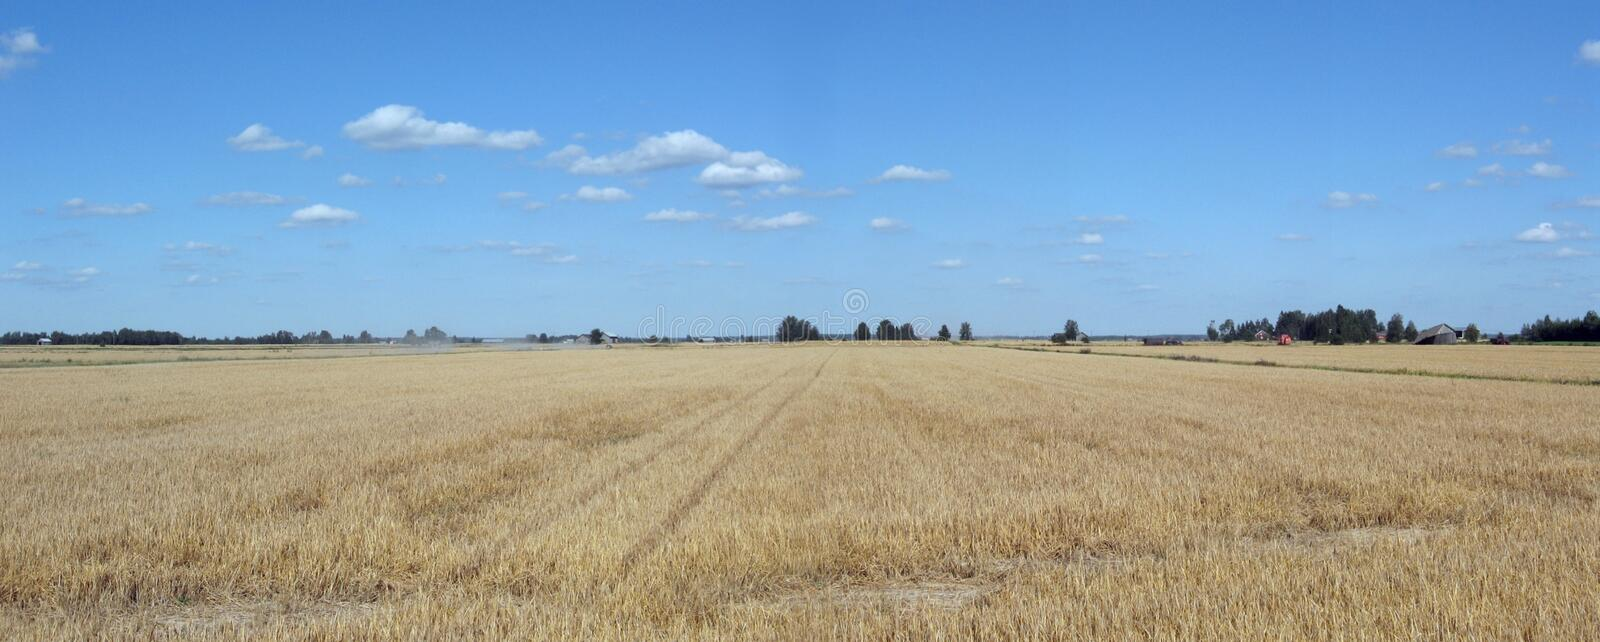 Download Countryside panorama stock photo. Image of landscape, grain - 3015180